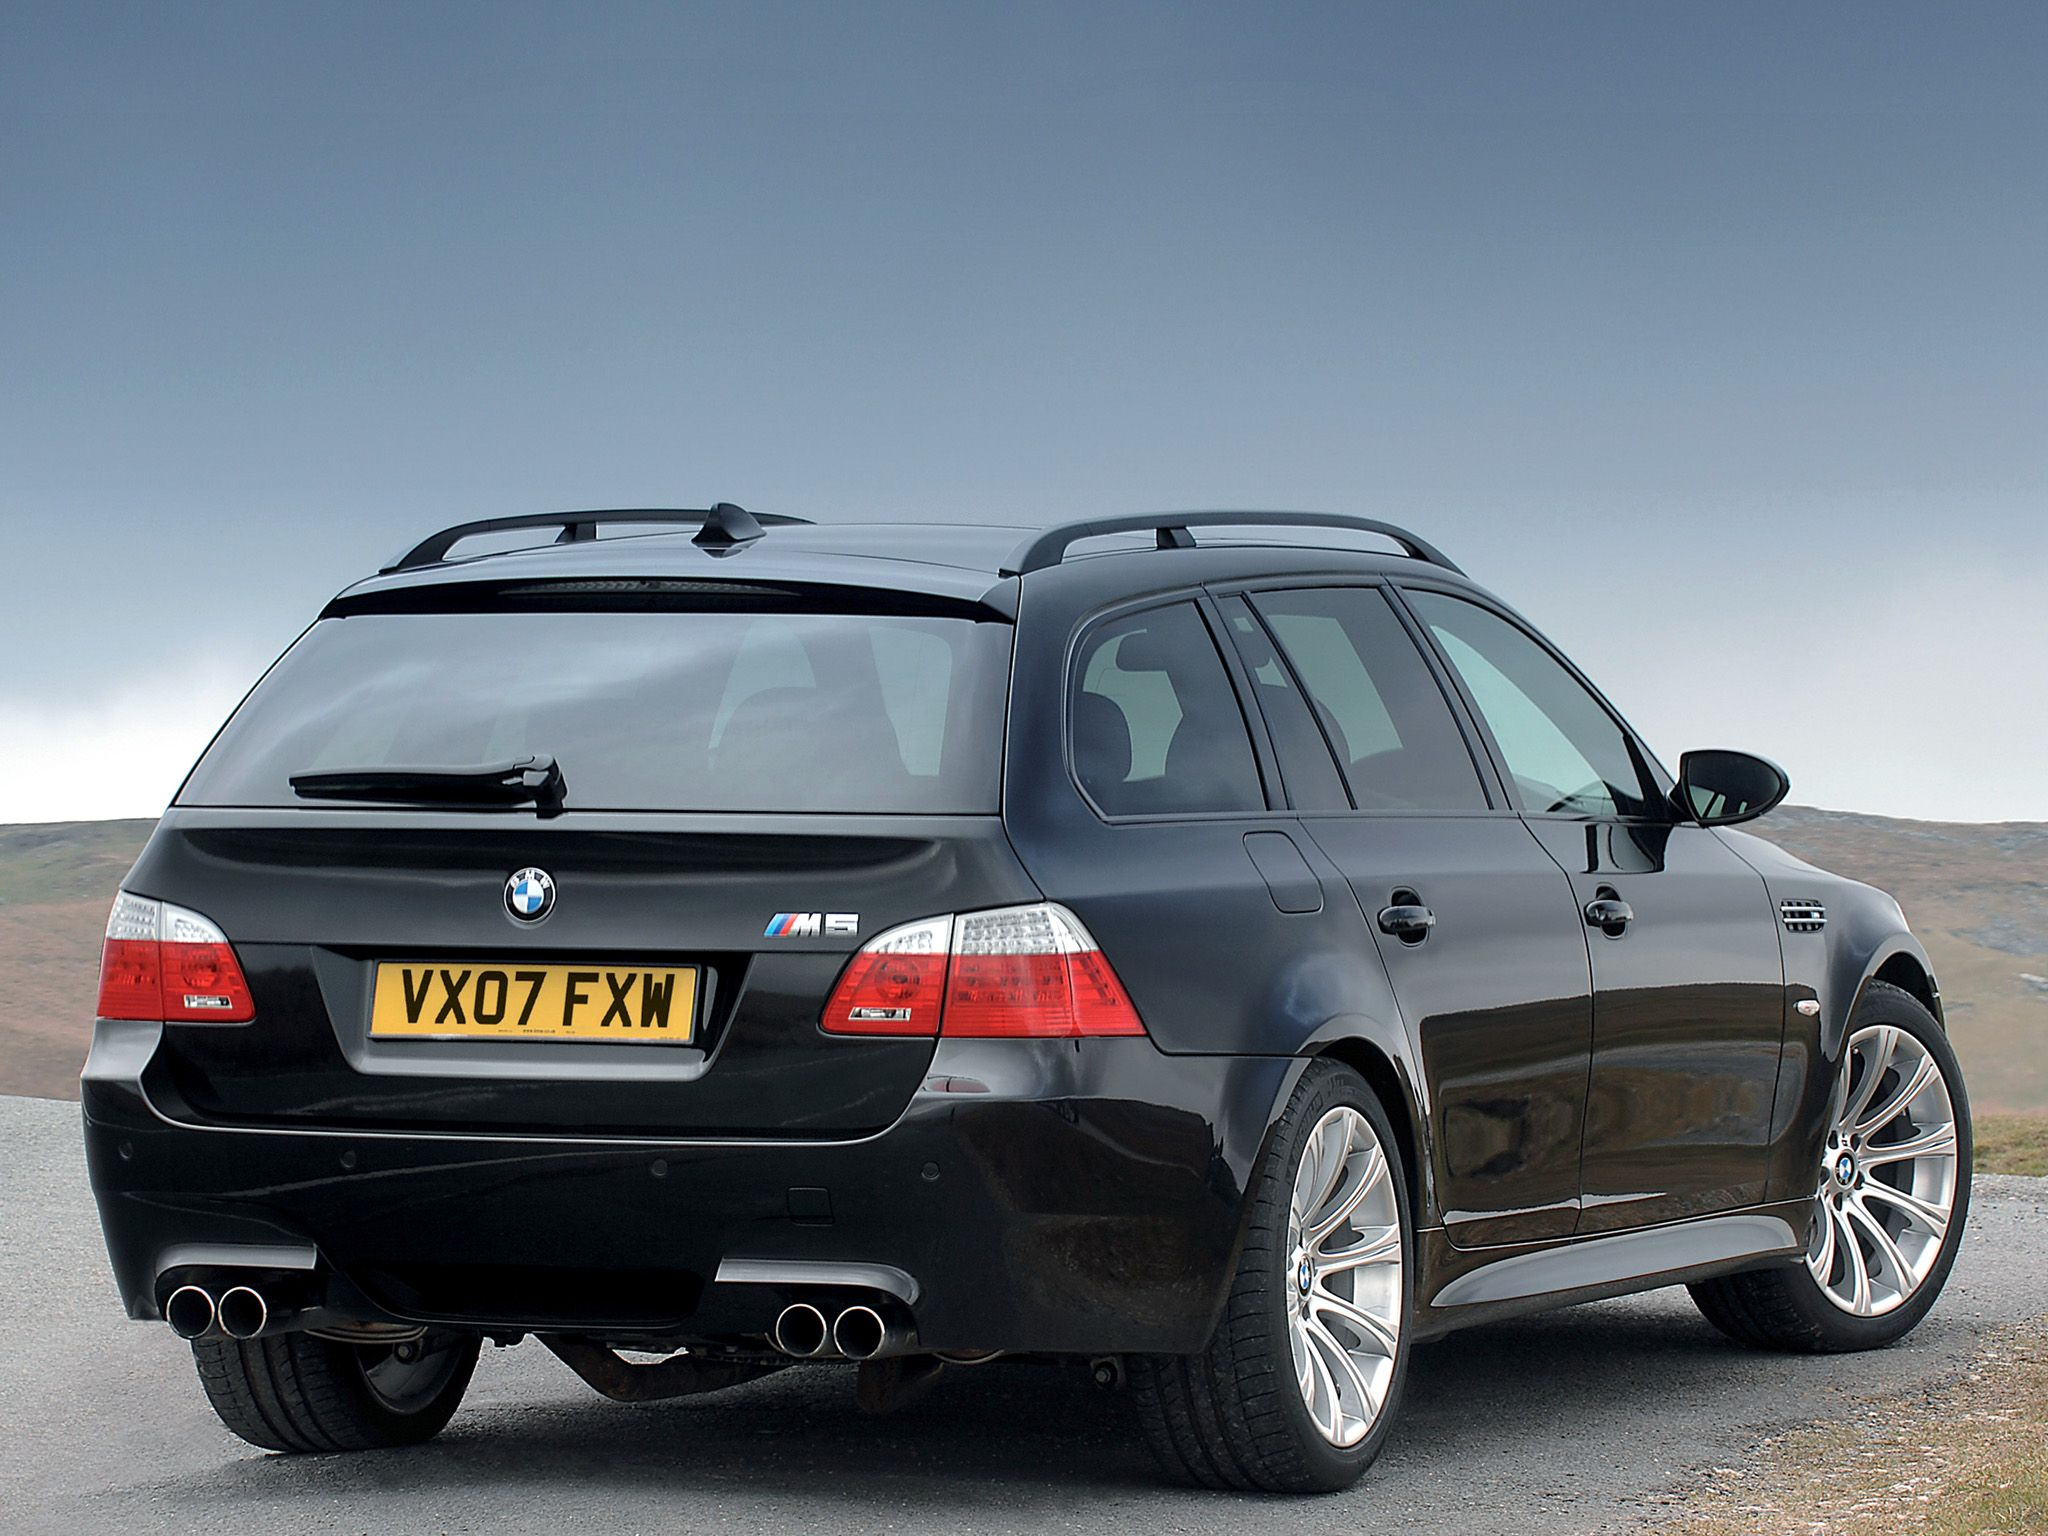 Bmw f11 m5 touring wagon quite possibly the perfect family car my cars pinterest bmw cars and supercars